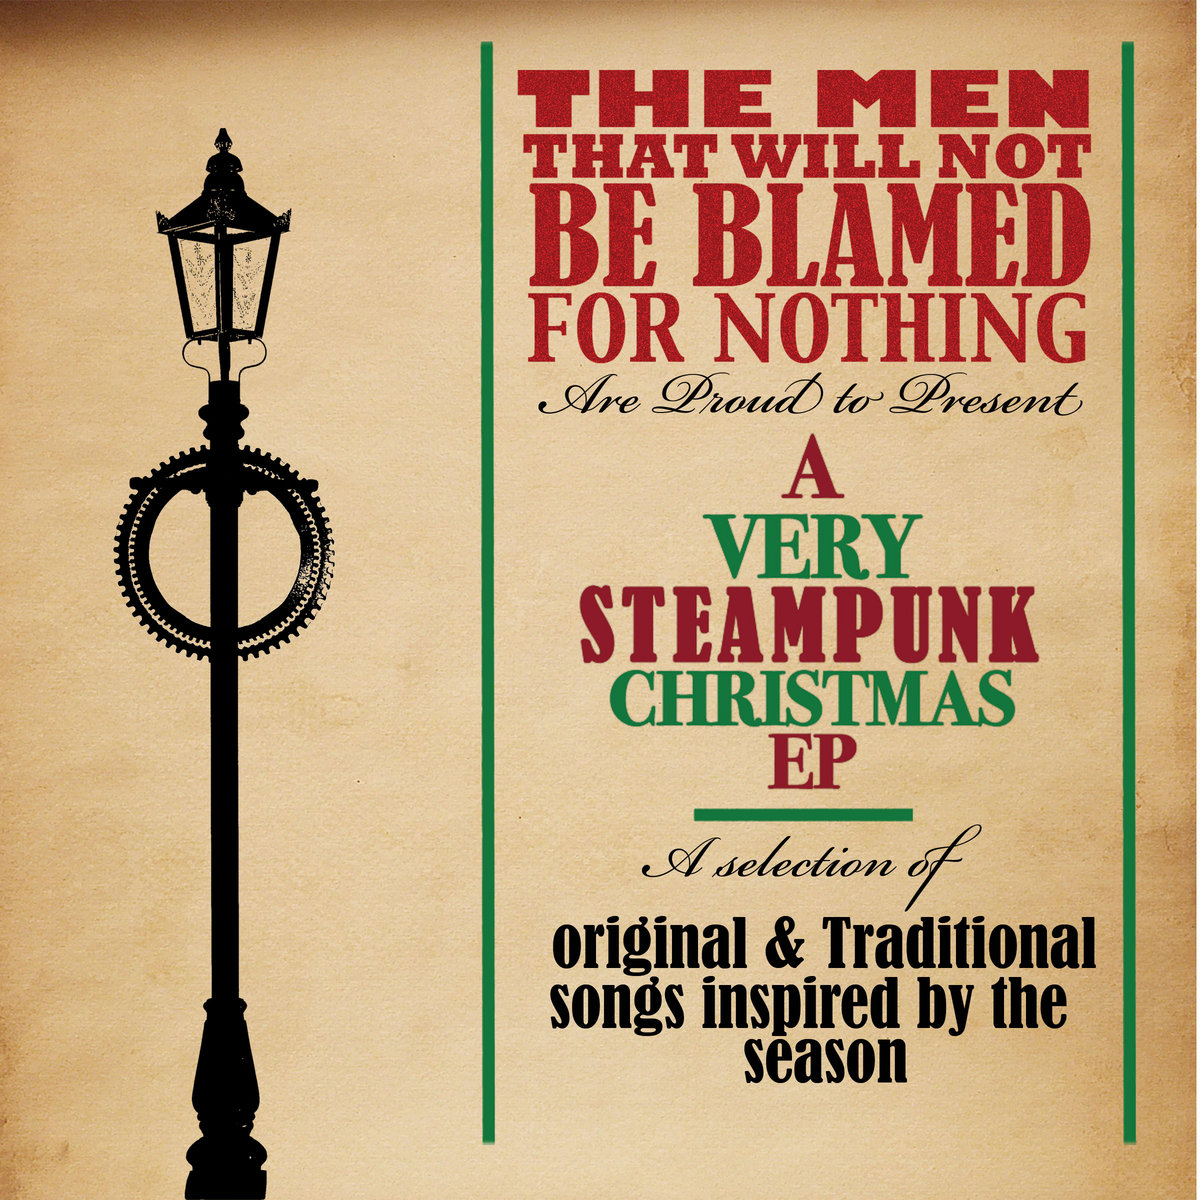 A Very Steampunk Christmas | The Men That Will Not Be Blamed For Nothing